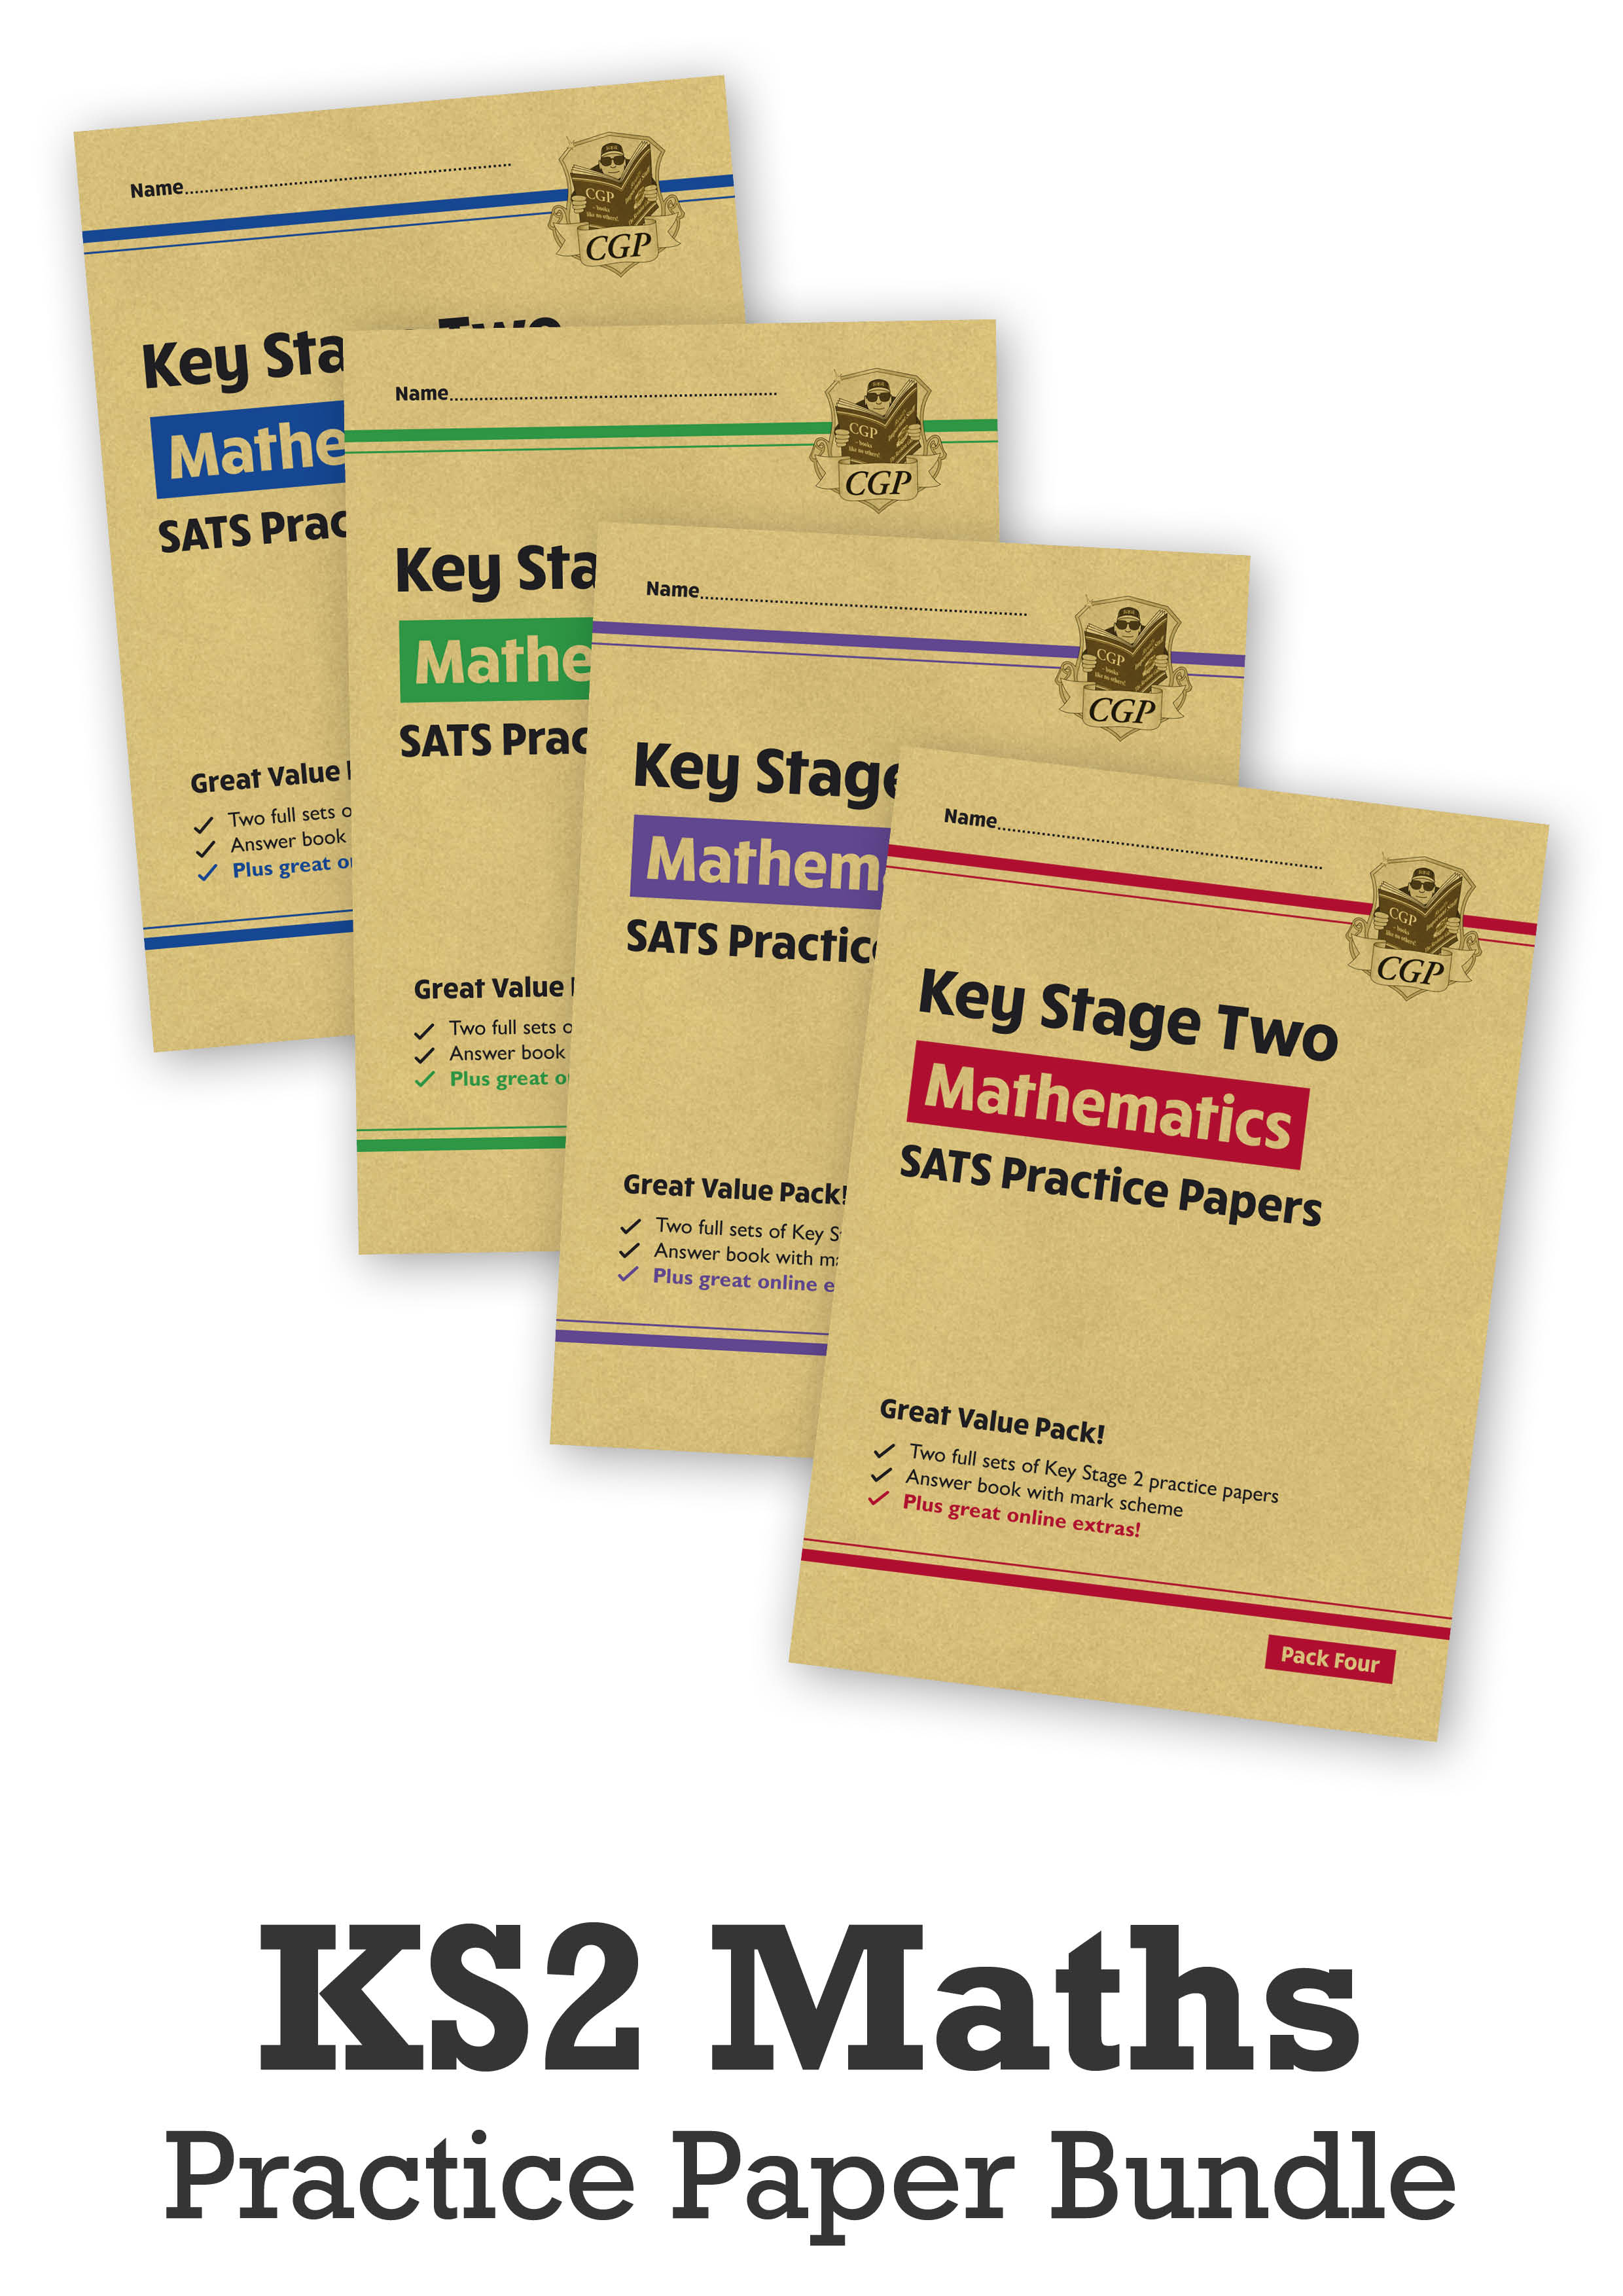 MHB4P24 - KS2 Maths SATS Practice Paper Bundle: Packs 1, 2, 3 & 4 - for the 2021 tests (with Online